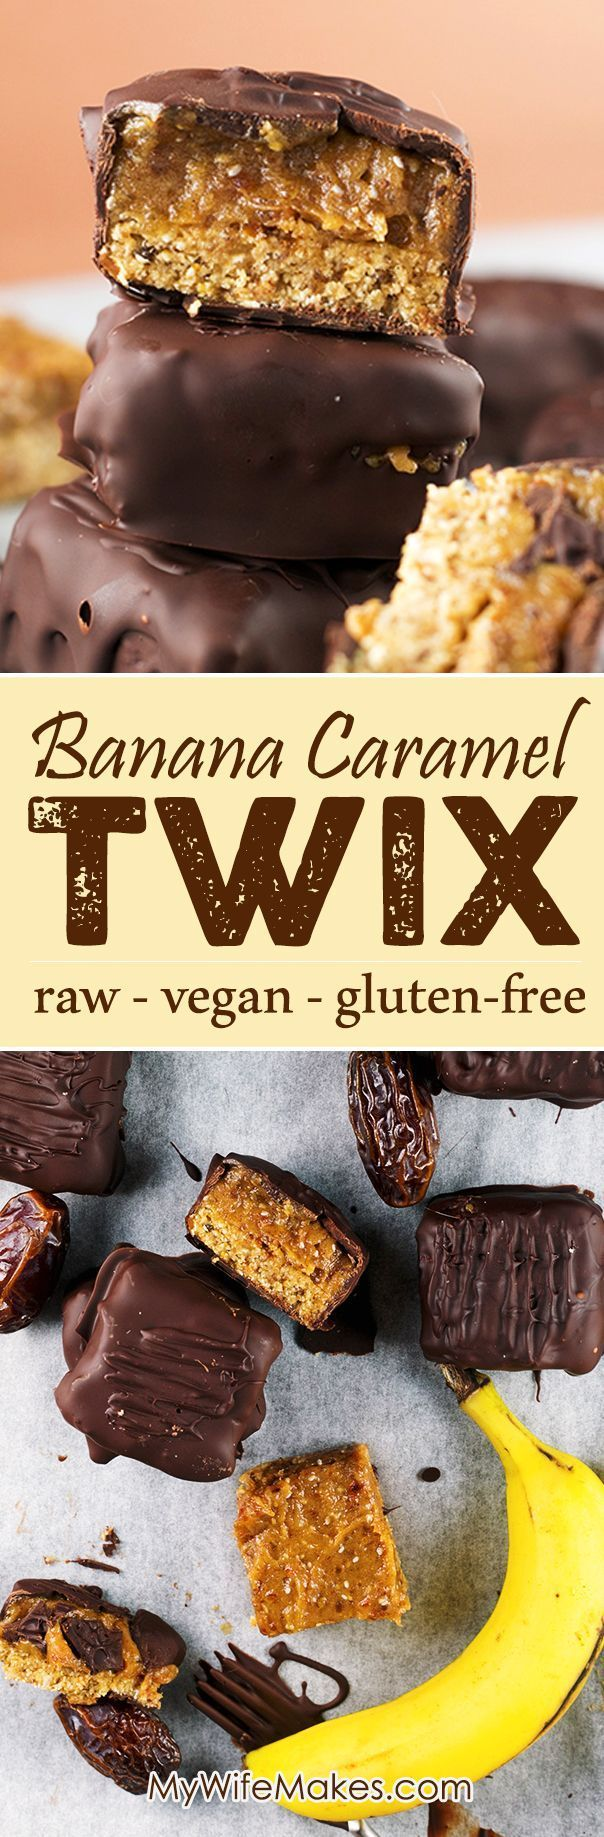 Homemade Raw Vegan Twix Bars with Banana Date Caramel. 100% Guilt Free | Gluten Free | Raw | Vegan | Nut Free